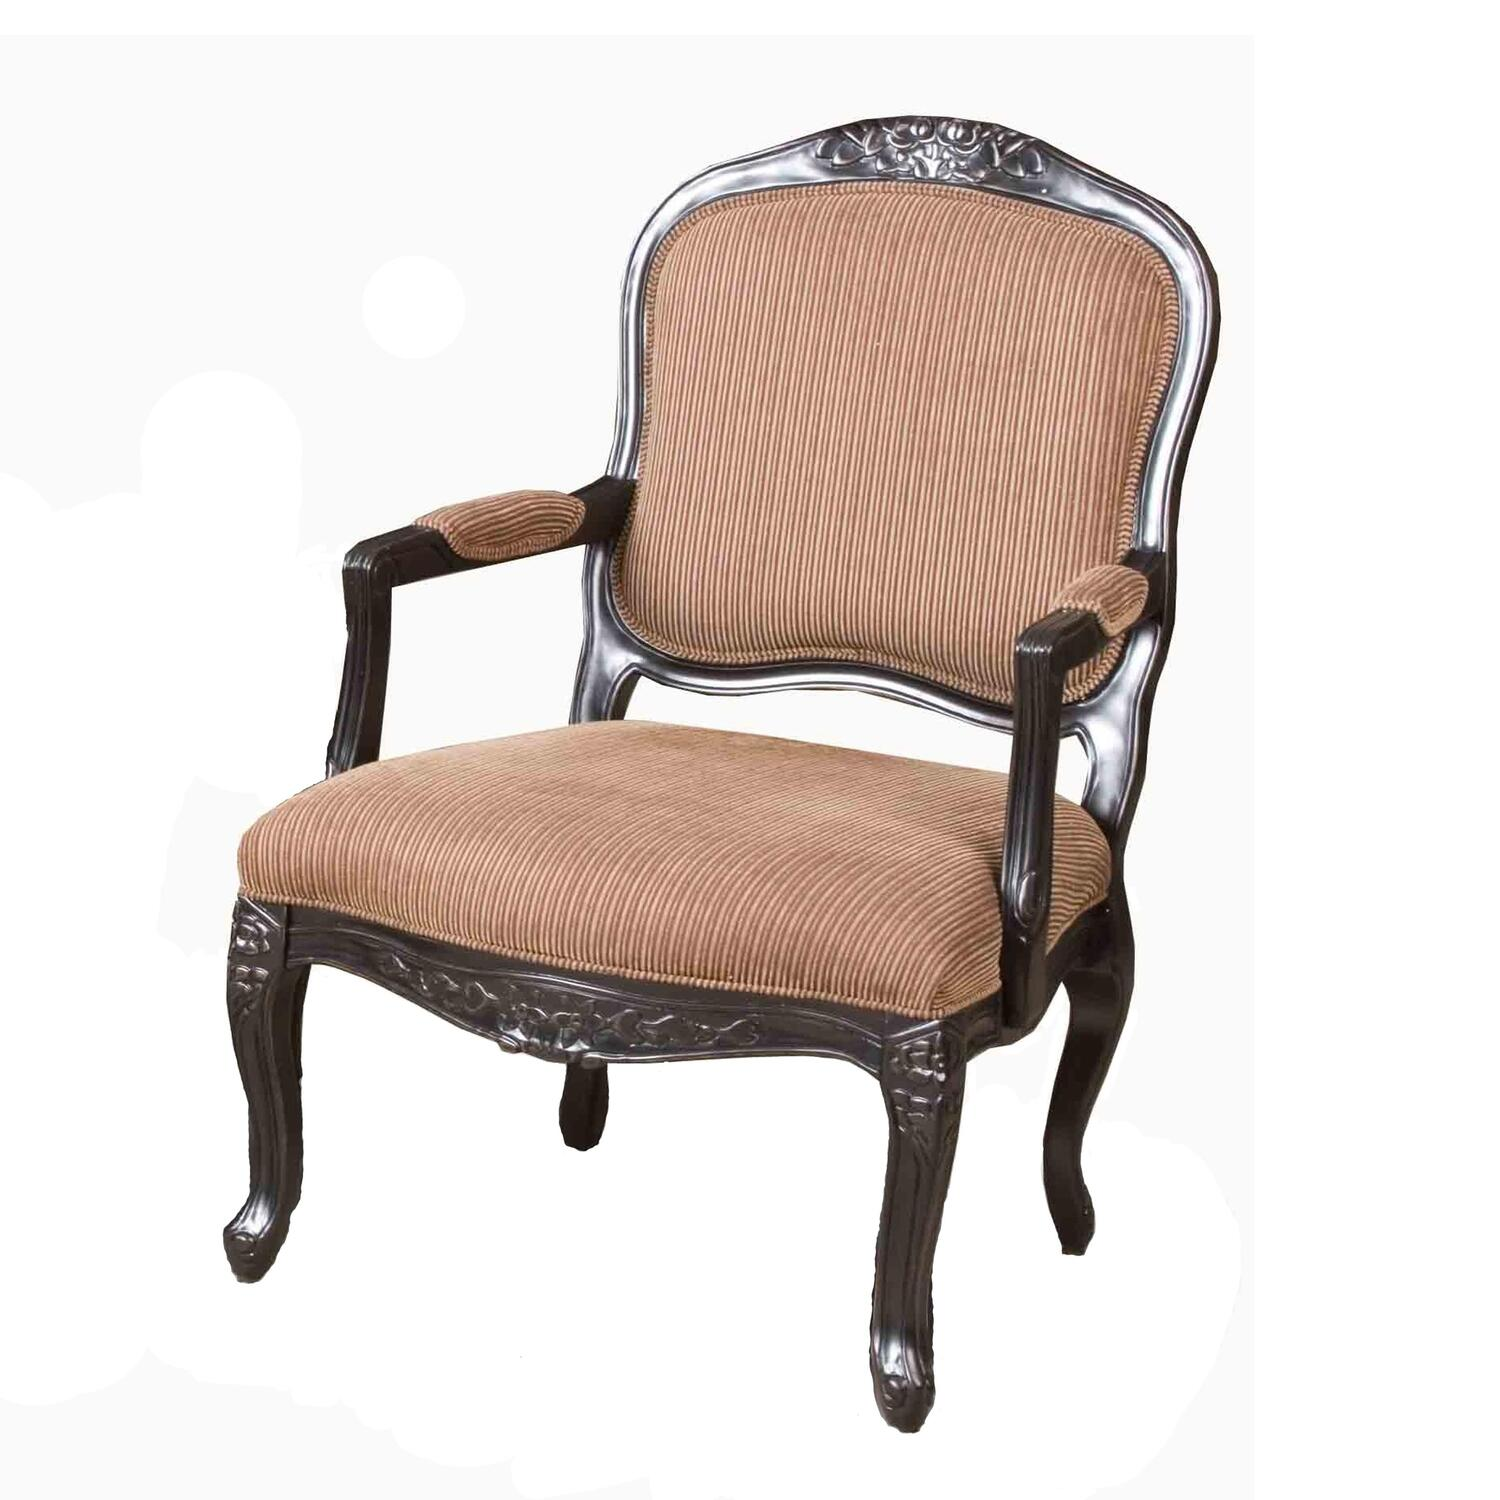 fort Pointe Elba French Accent Chair by OJ merce 143 01 $248 04